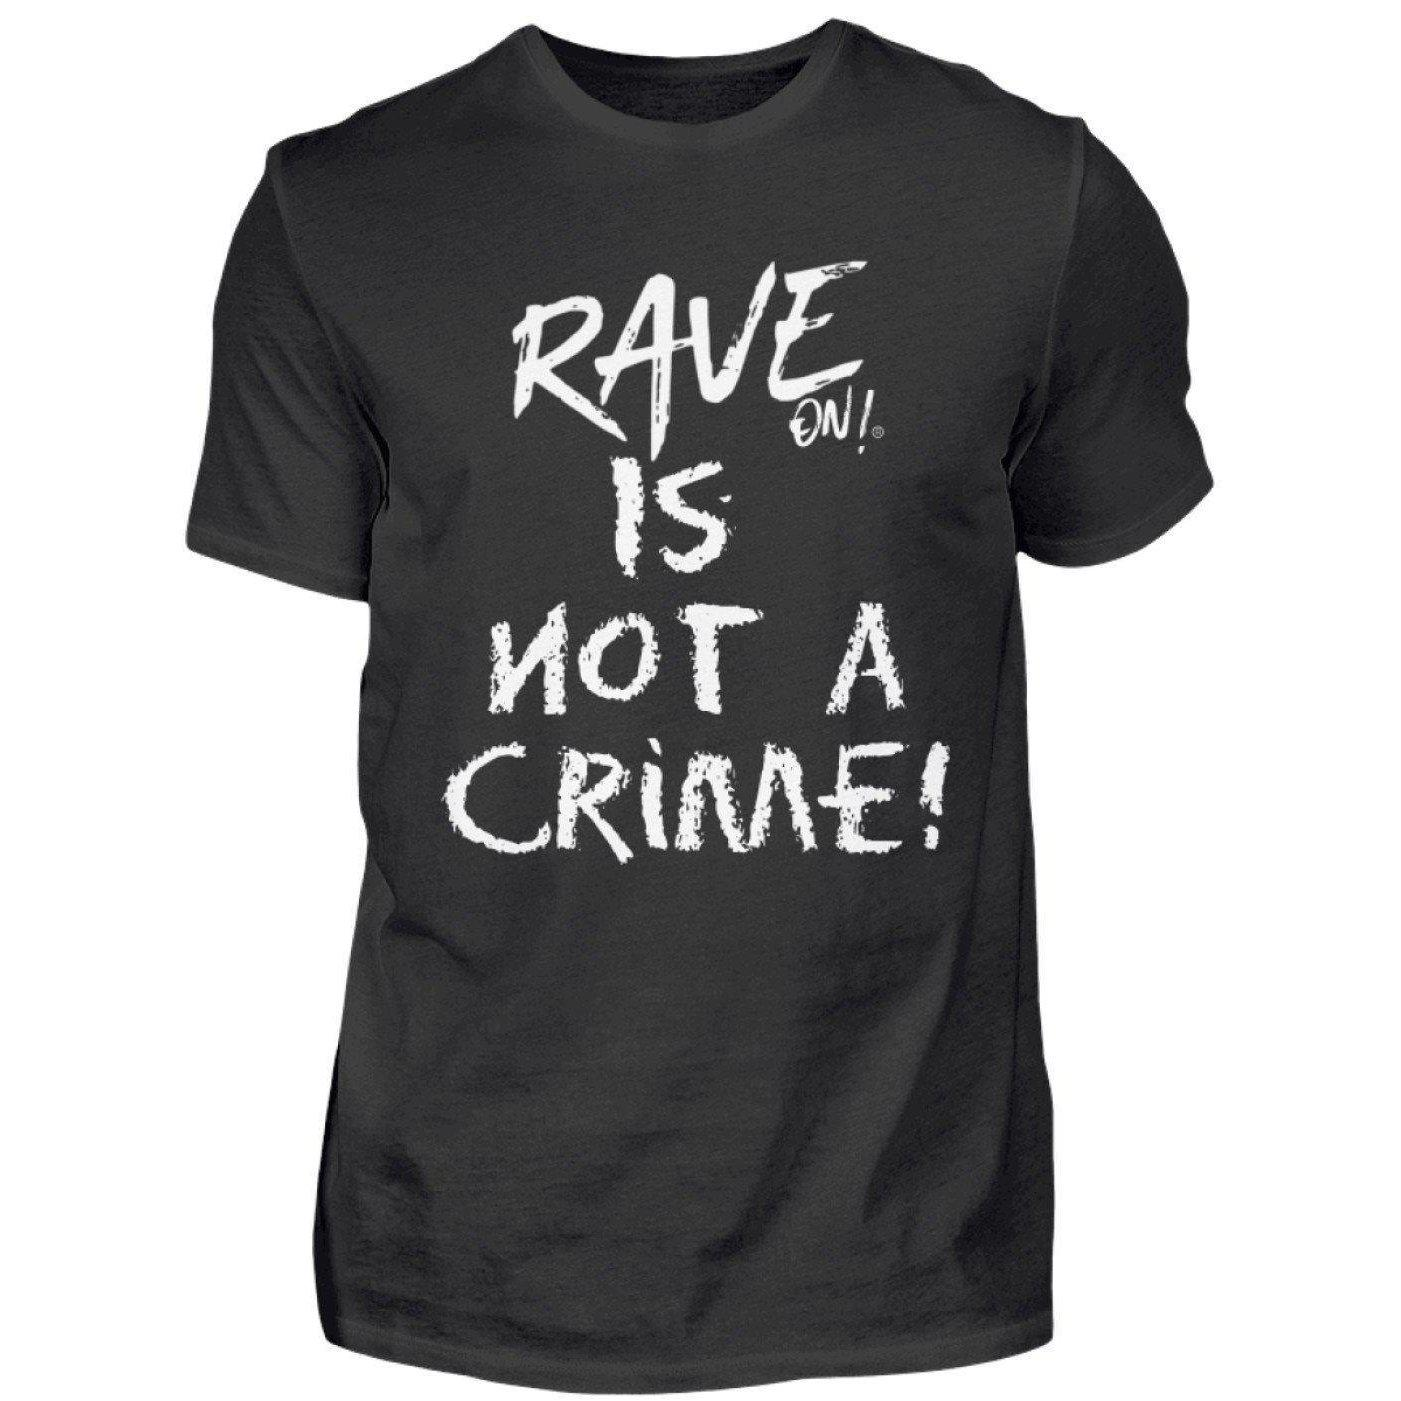 Rave is not a Crime Rave On!® Shirt - Herren Shirt Herren Basic T-Shirt Schwarz / S - Rave On!® der Club & Techno Szene Shop für Coole Junge Mode Streetwear Style & Fashion Outfits + Sexy Festival 420 Stuff